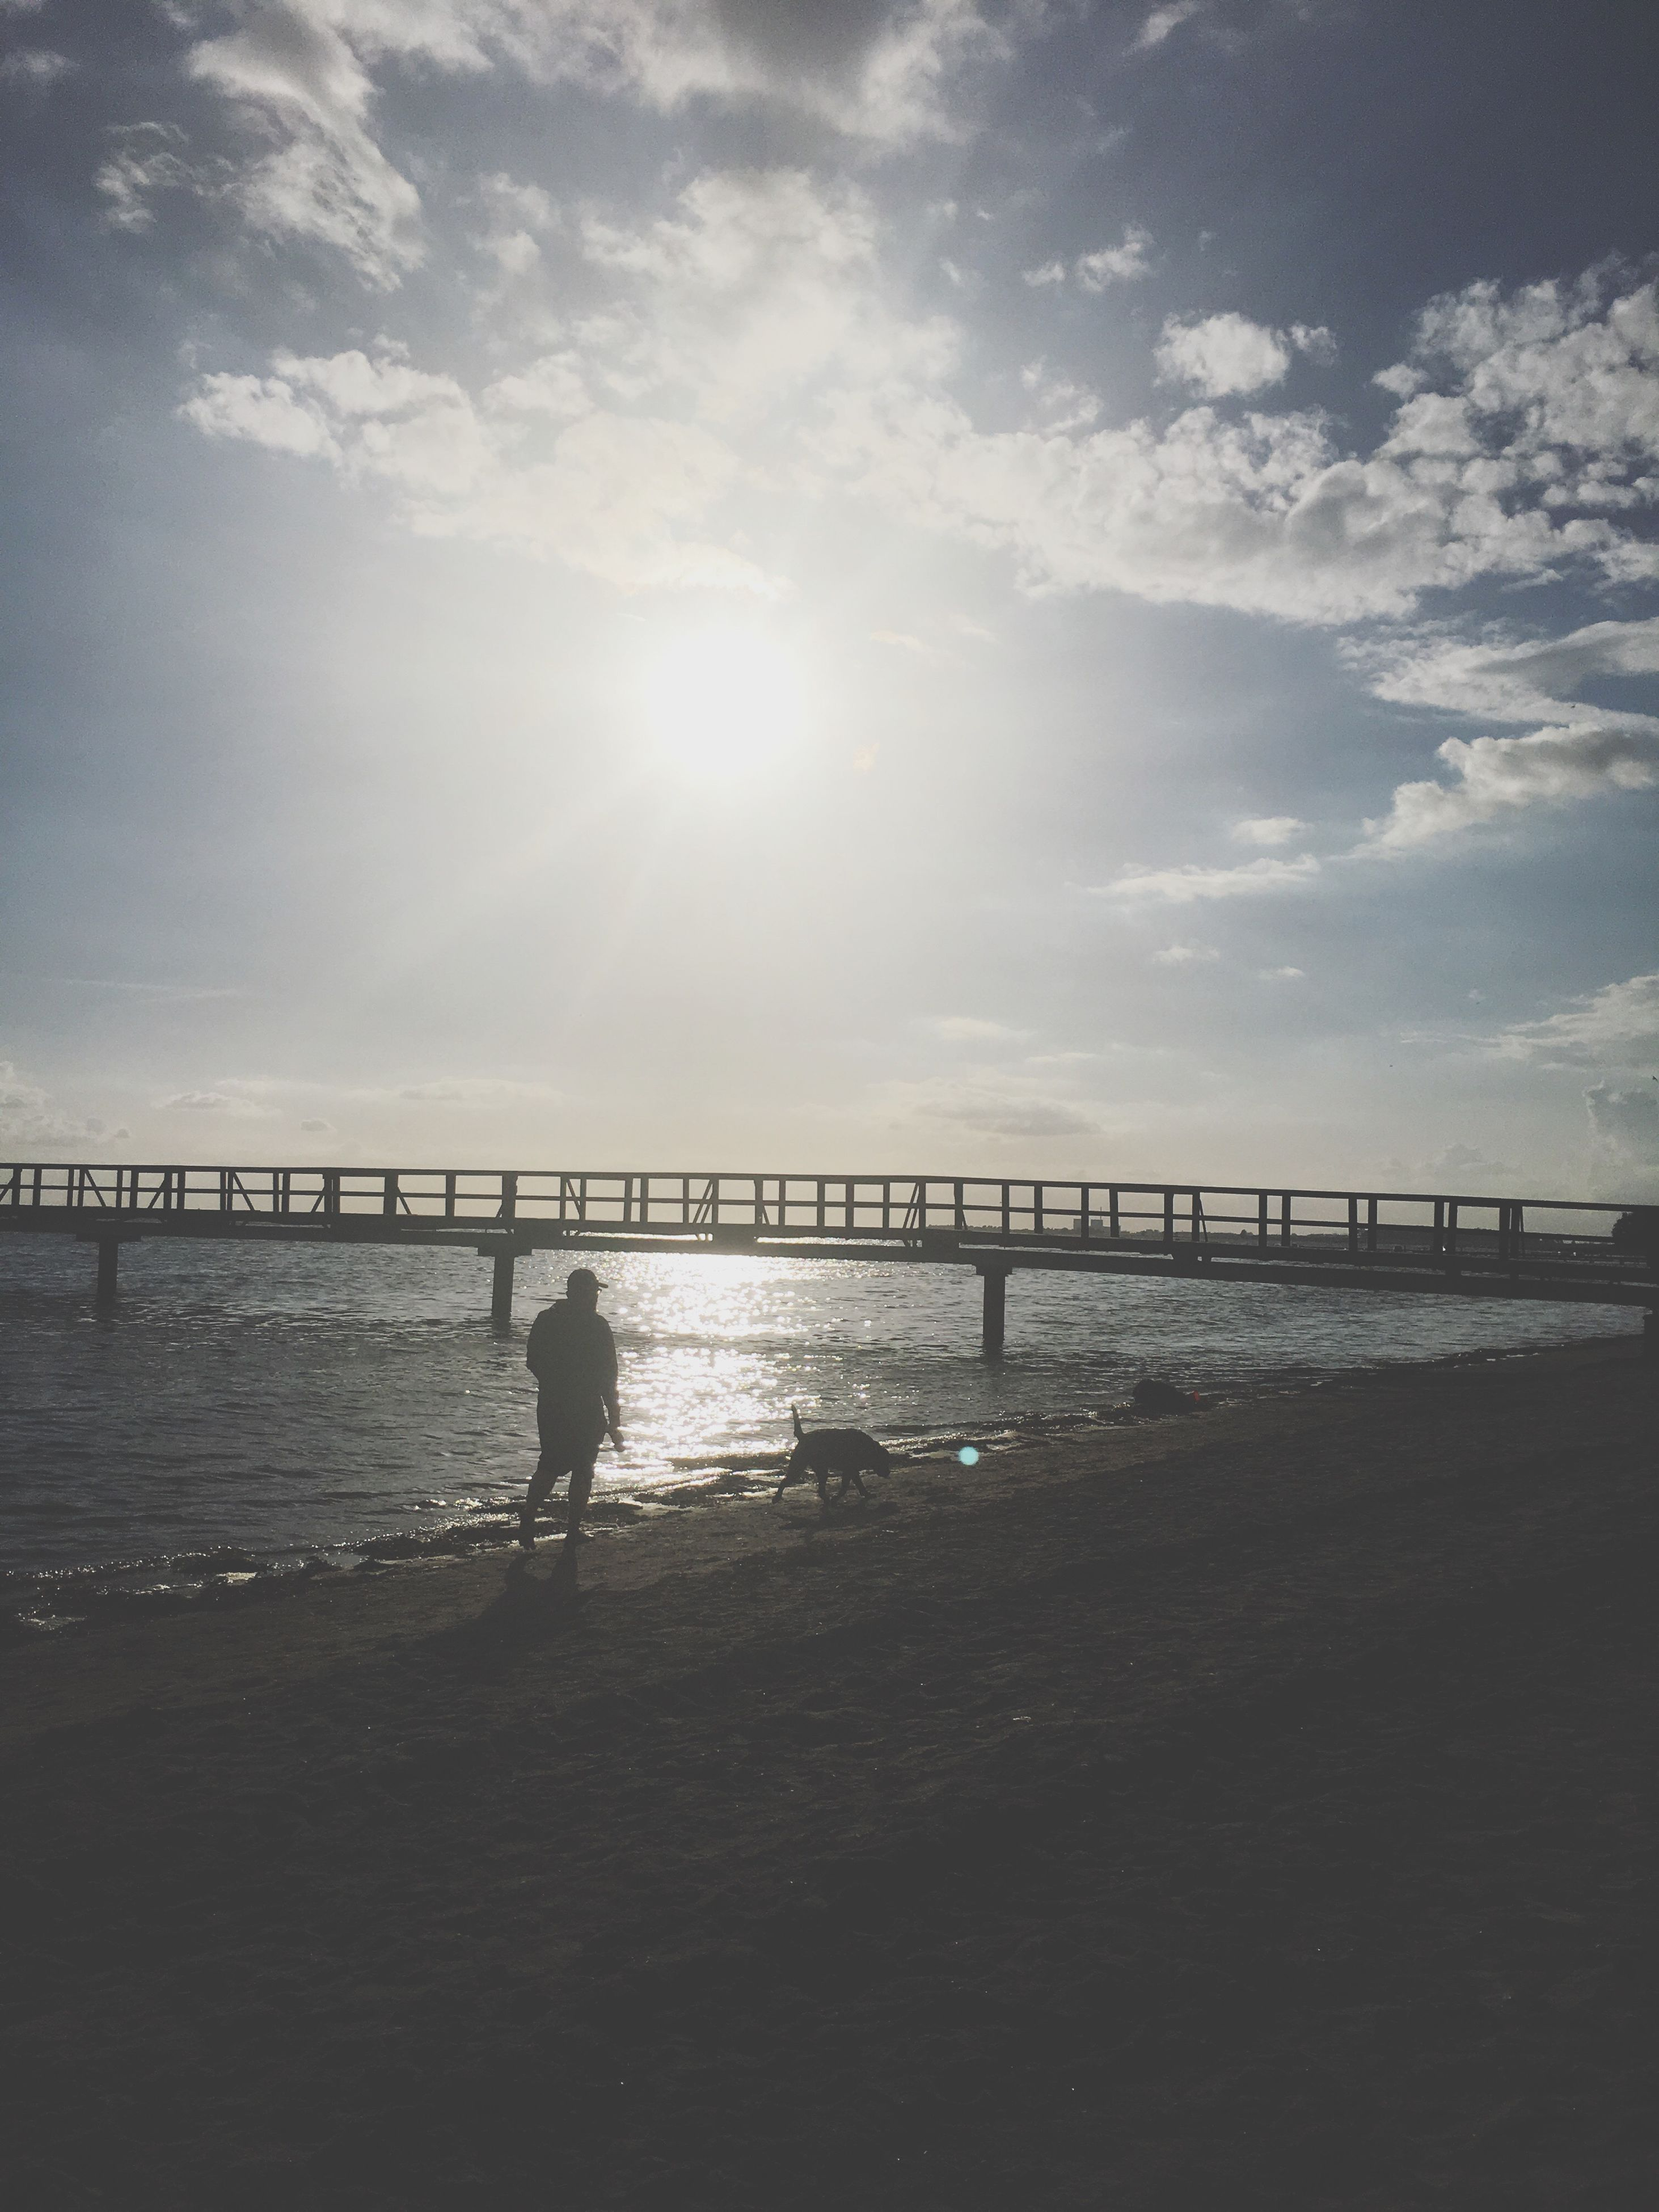 sea, beach, water, sunlight, sky, silhouette, railing, nature, outdoors, one person, sun, horizon over water, sunset, standing, sand, tranquil scene, scenics, leisure activity, tranquility, beauty in nature, day, full length, real people, people